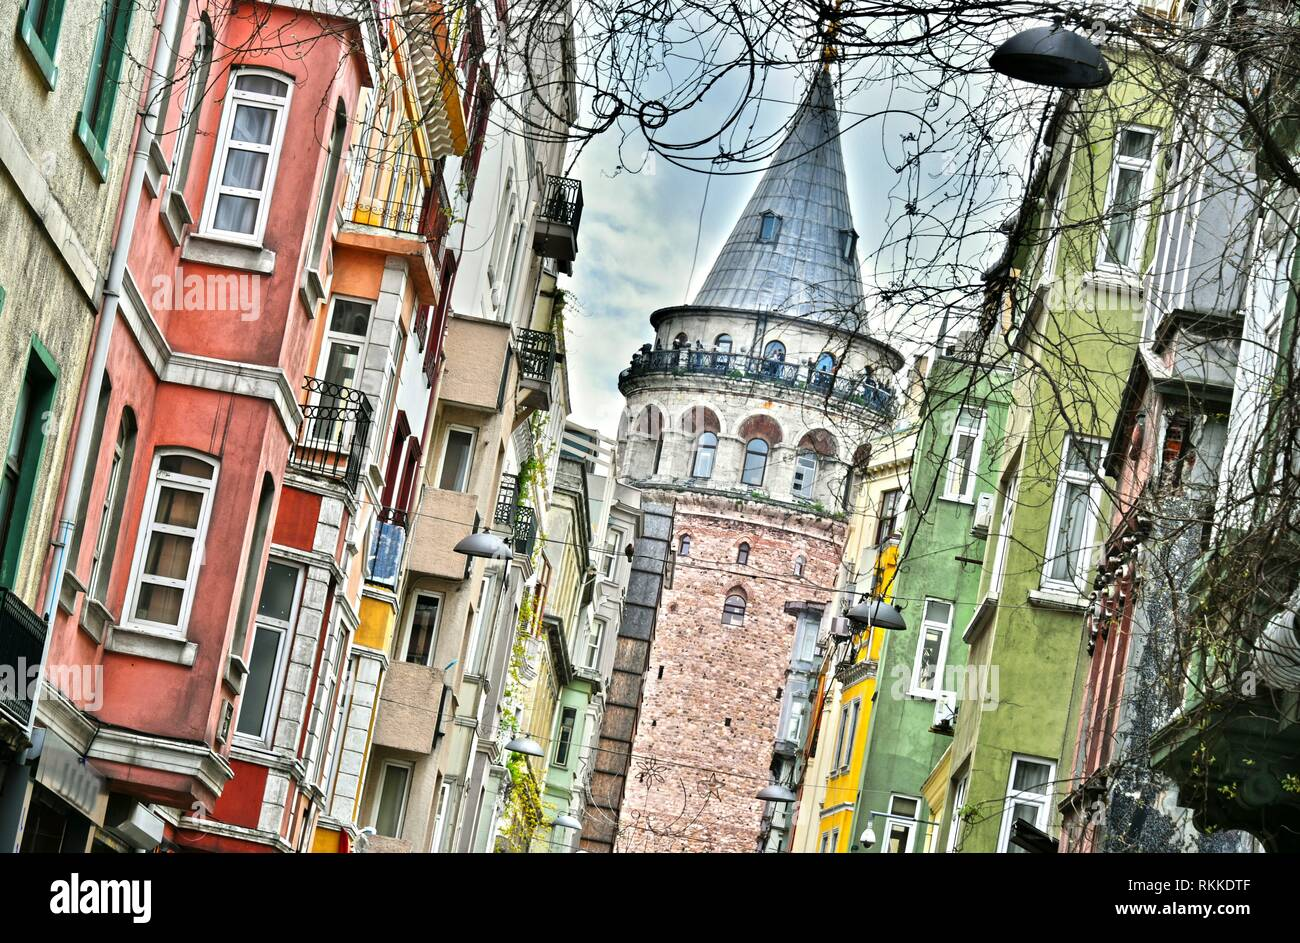 Galata Tower called also the Tower of Christ is a medieval stone tower in the Galata quarter of Istanbul, Turkey,. - Stock Image